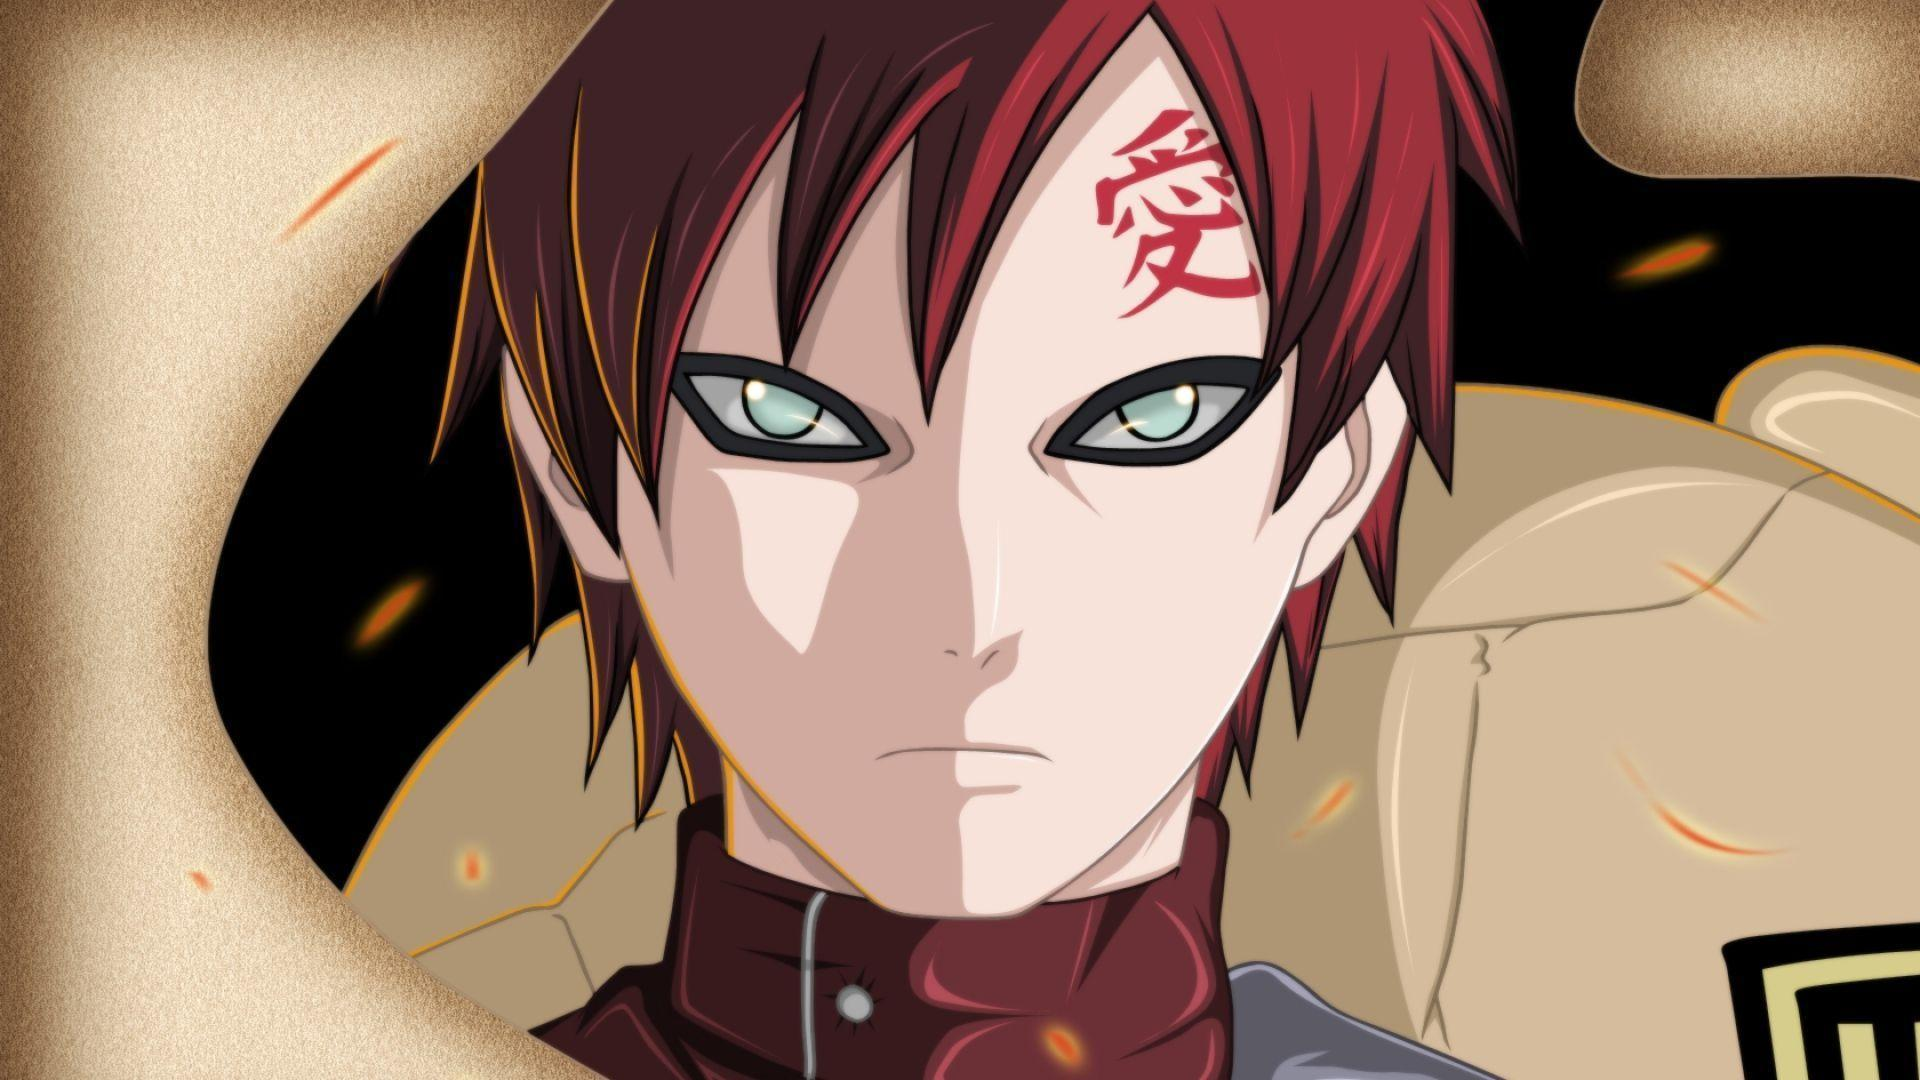 Gaara Backgrounds - Wallpaper Cave